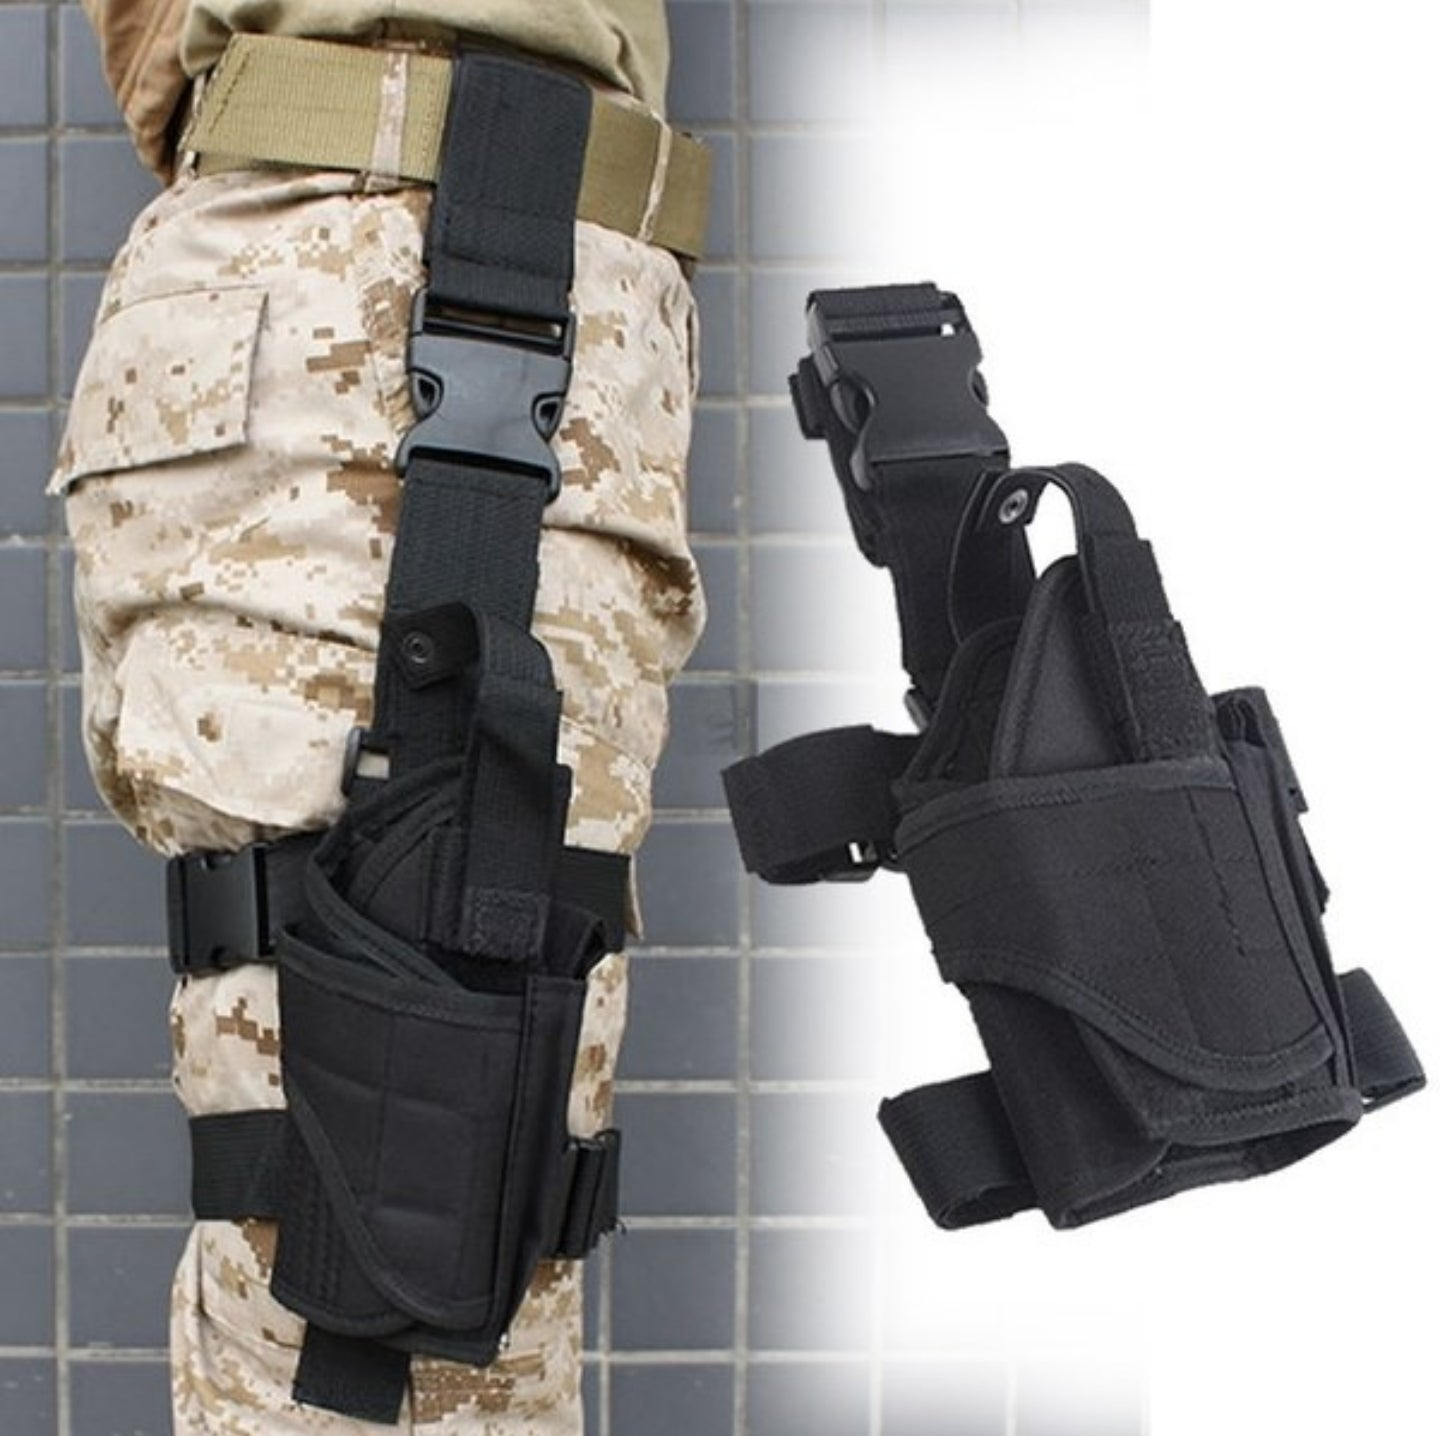 Leg thigh holster - adjustable